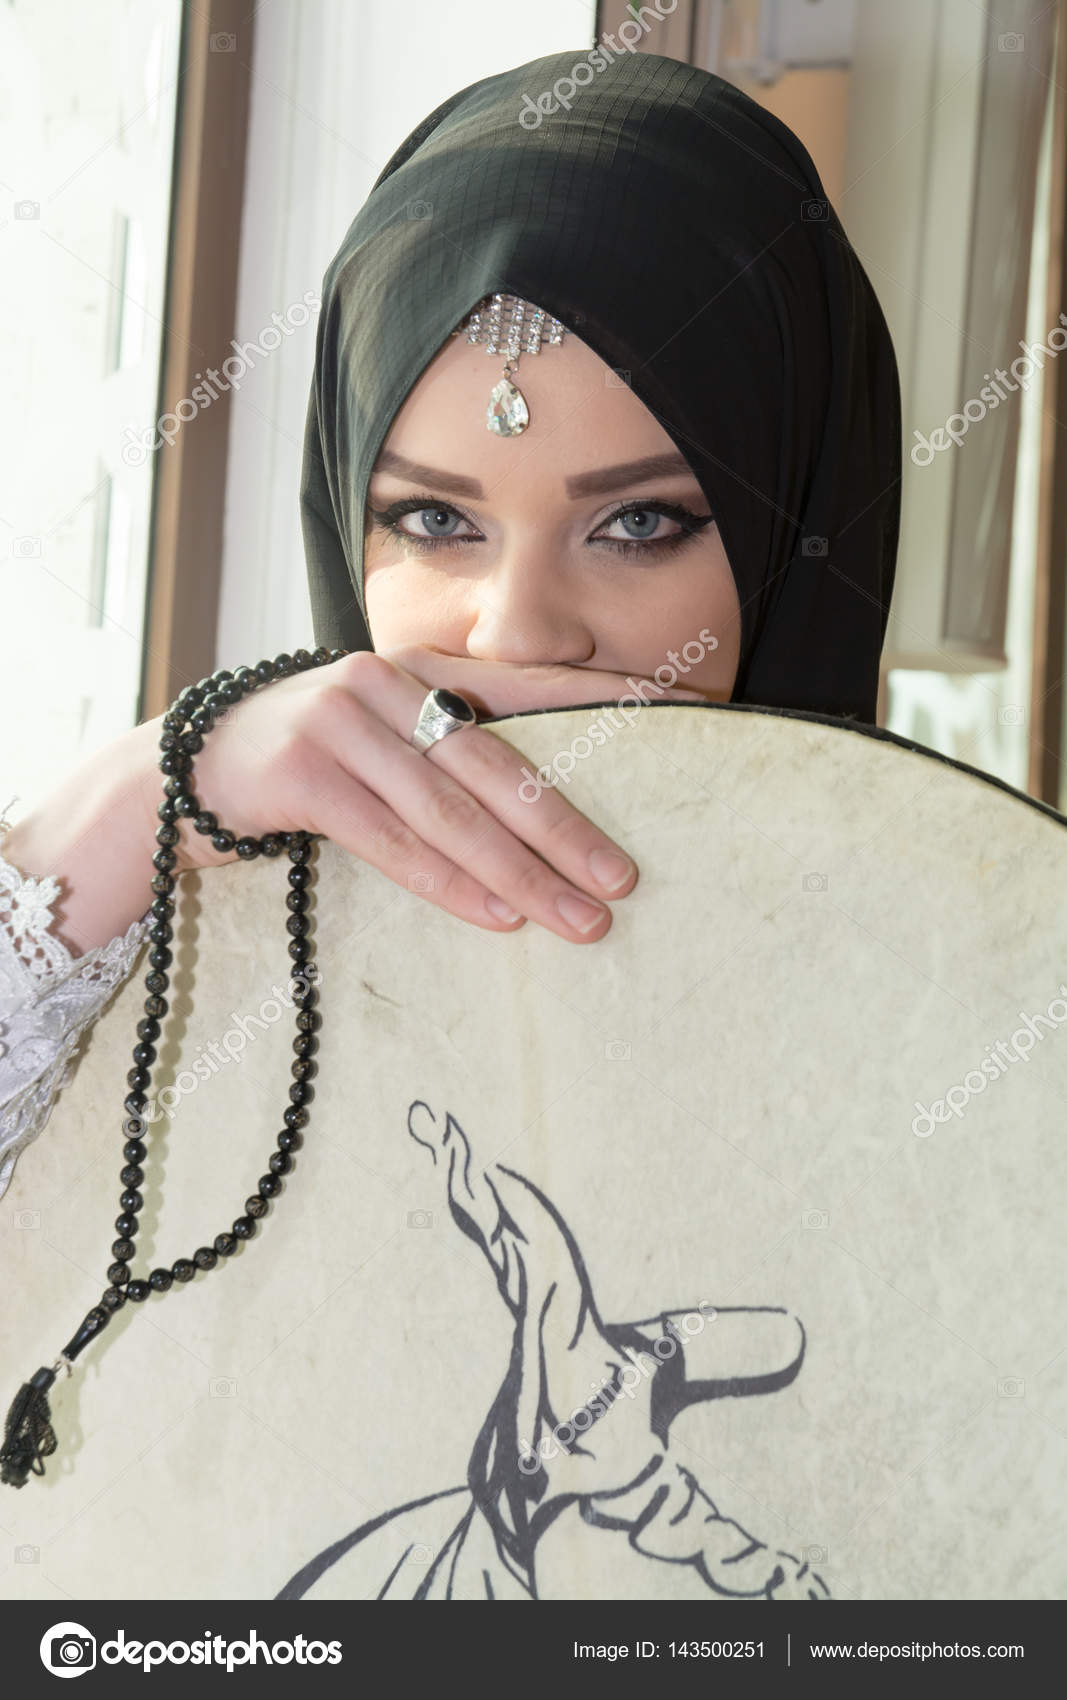 Think, Beautiful muslim women face pictures thanks. All